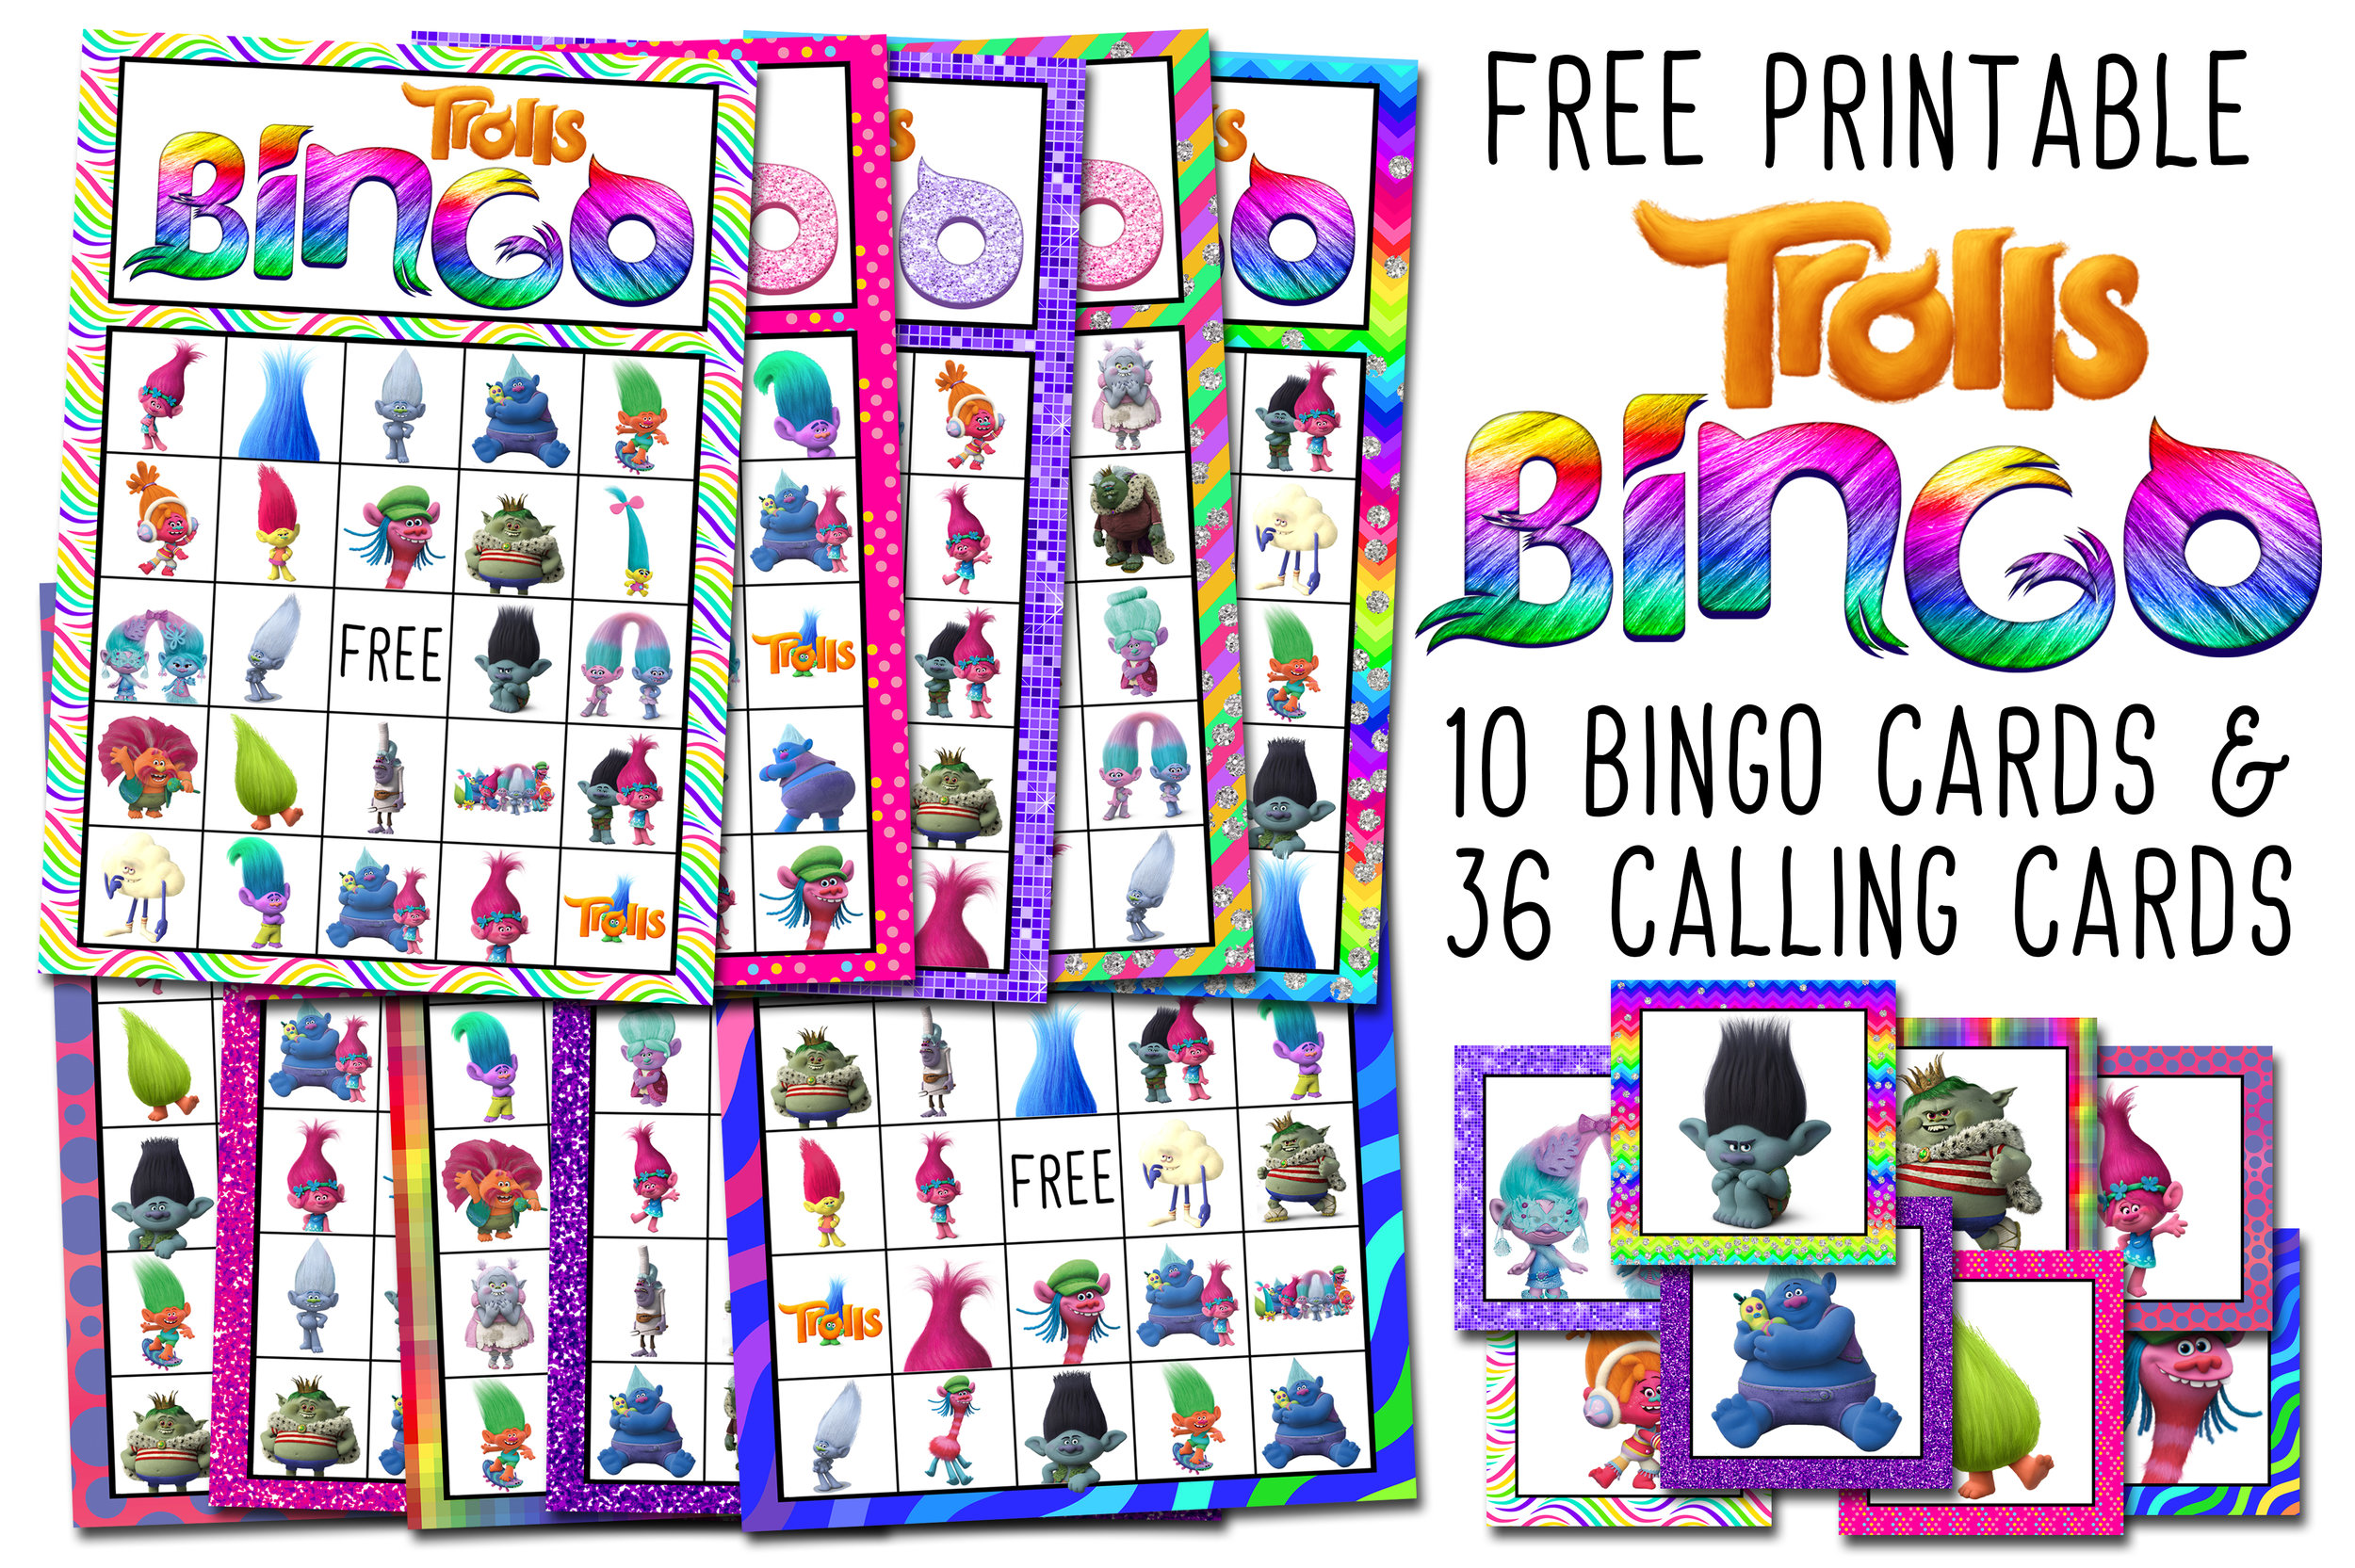 photograph about Disney Bingo Printable named Trolls Cost-free Printable Bingo Playing cards - Trolls Birthday Bash